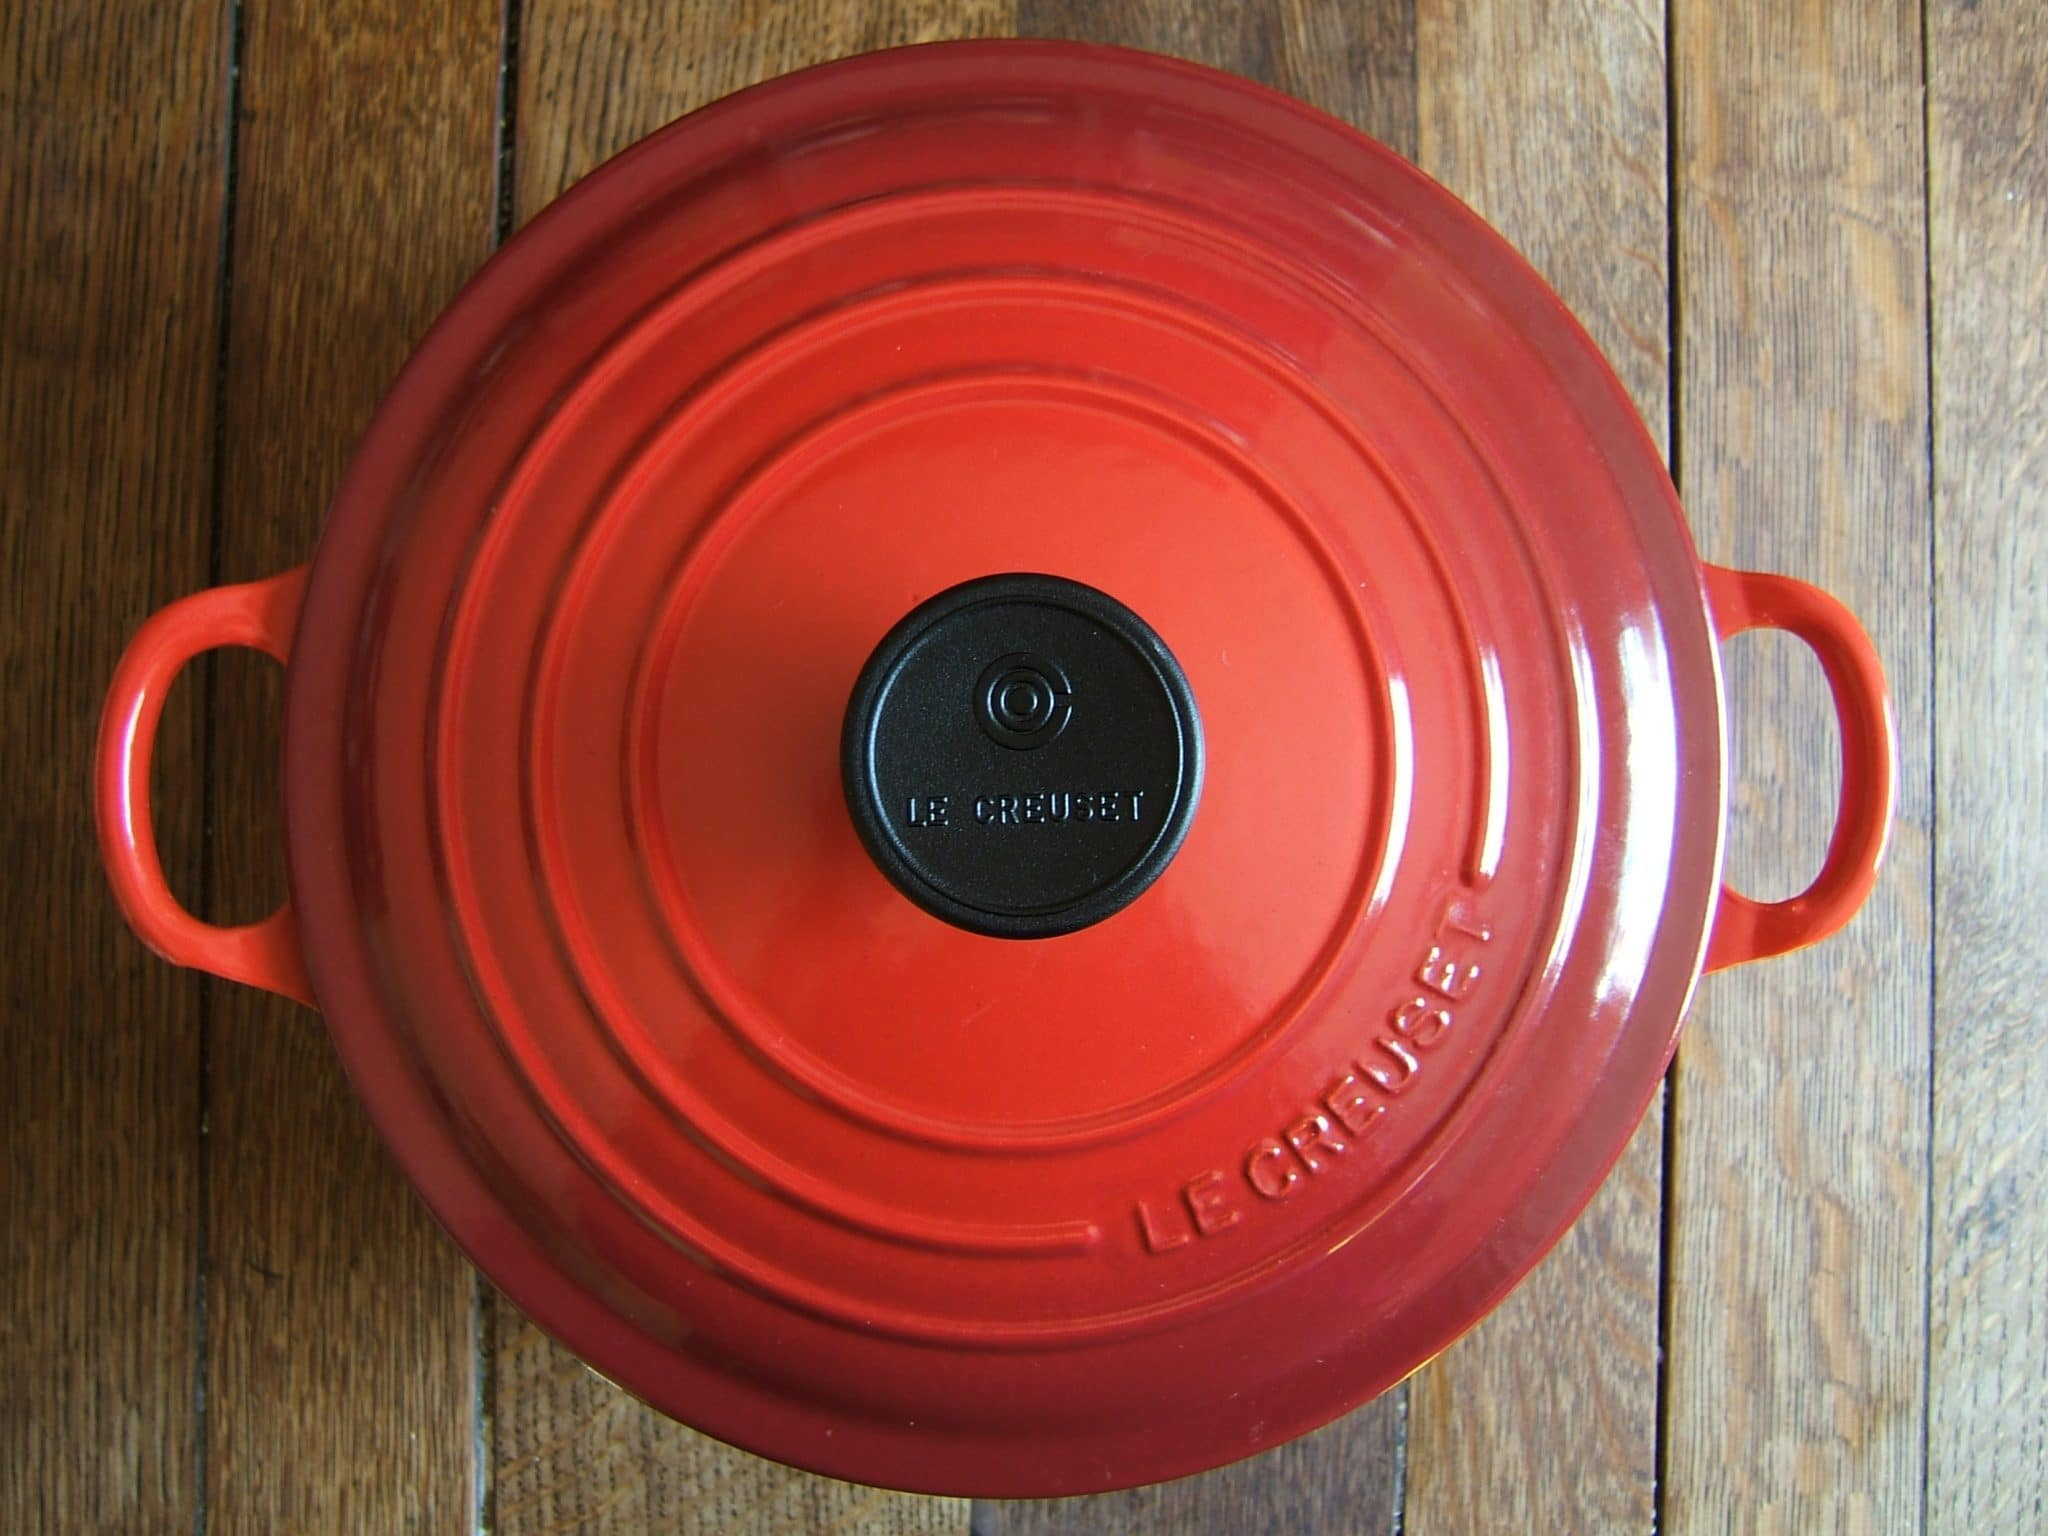 slow cooking pot, slow cooker cookware